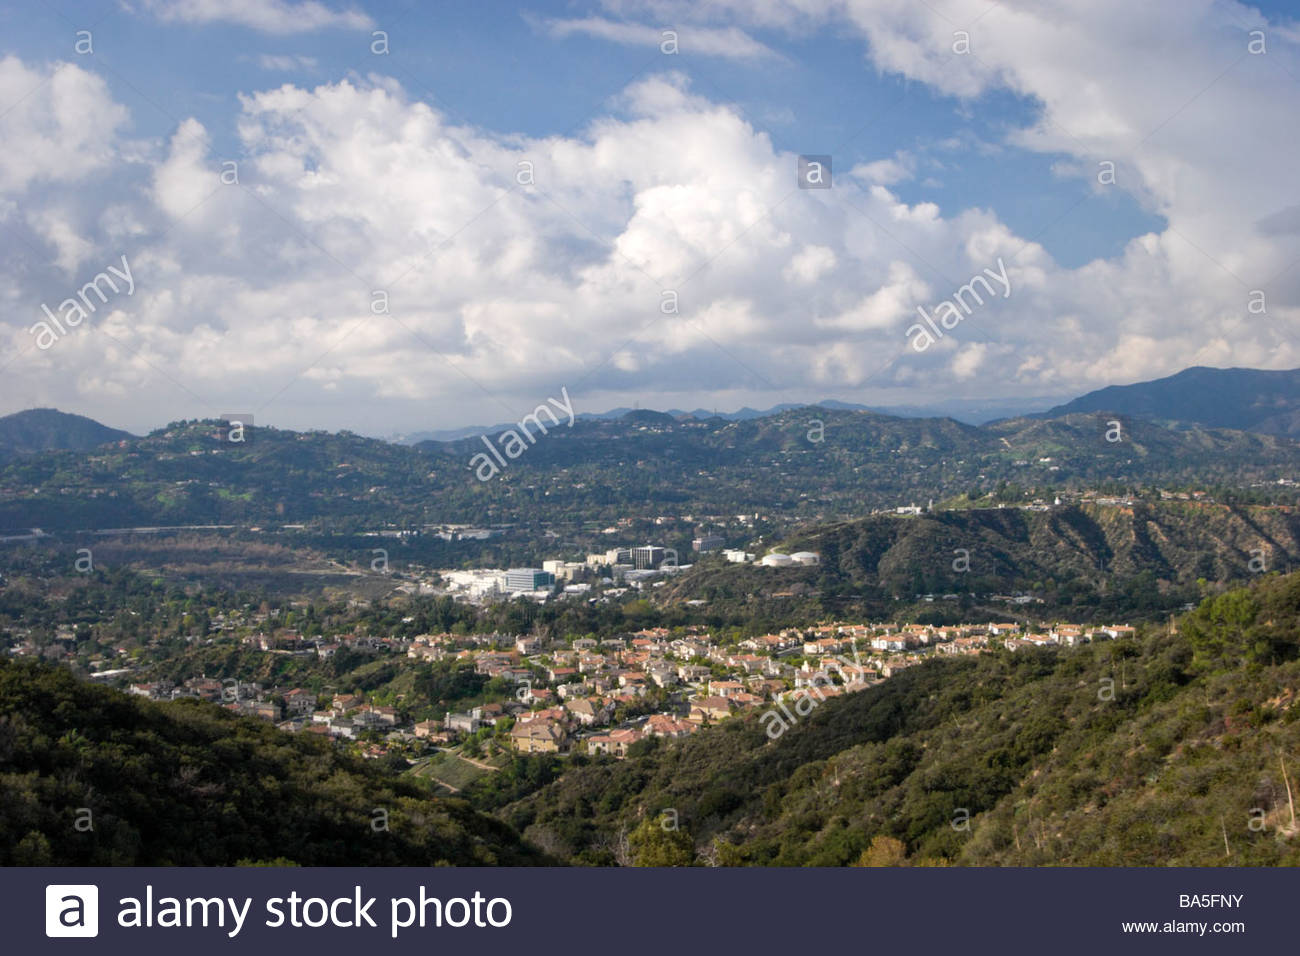 Scenic View of Jet Propulsion Laboratory from a Distance Pasadena California - Stock Image